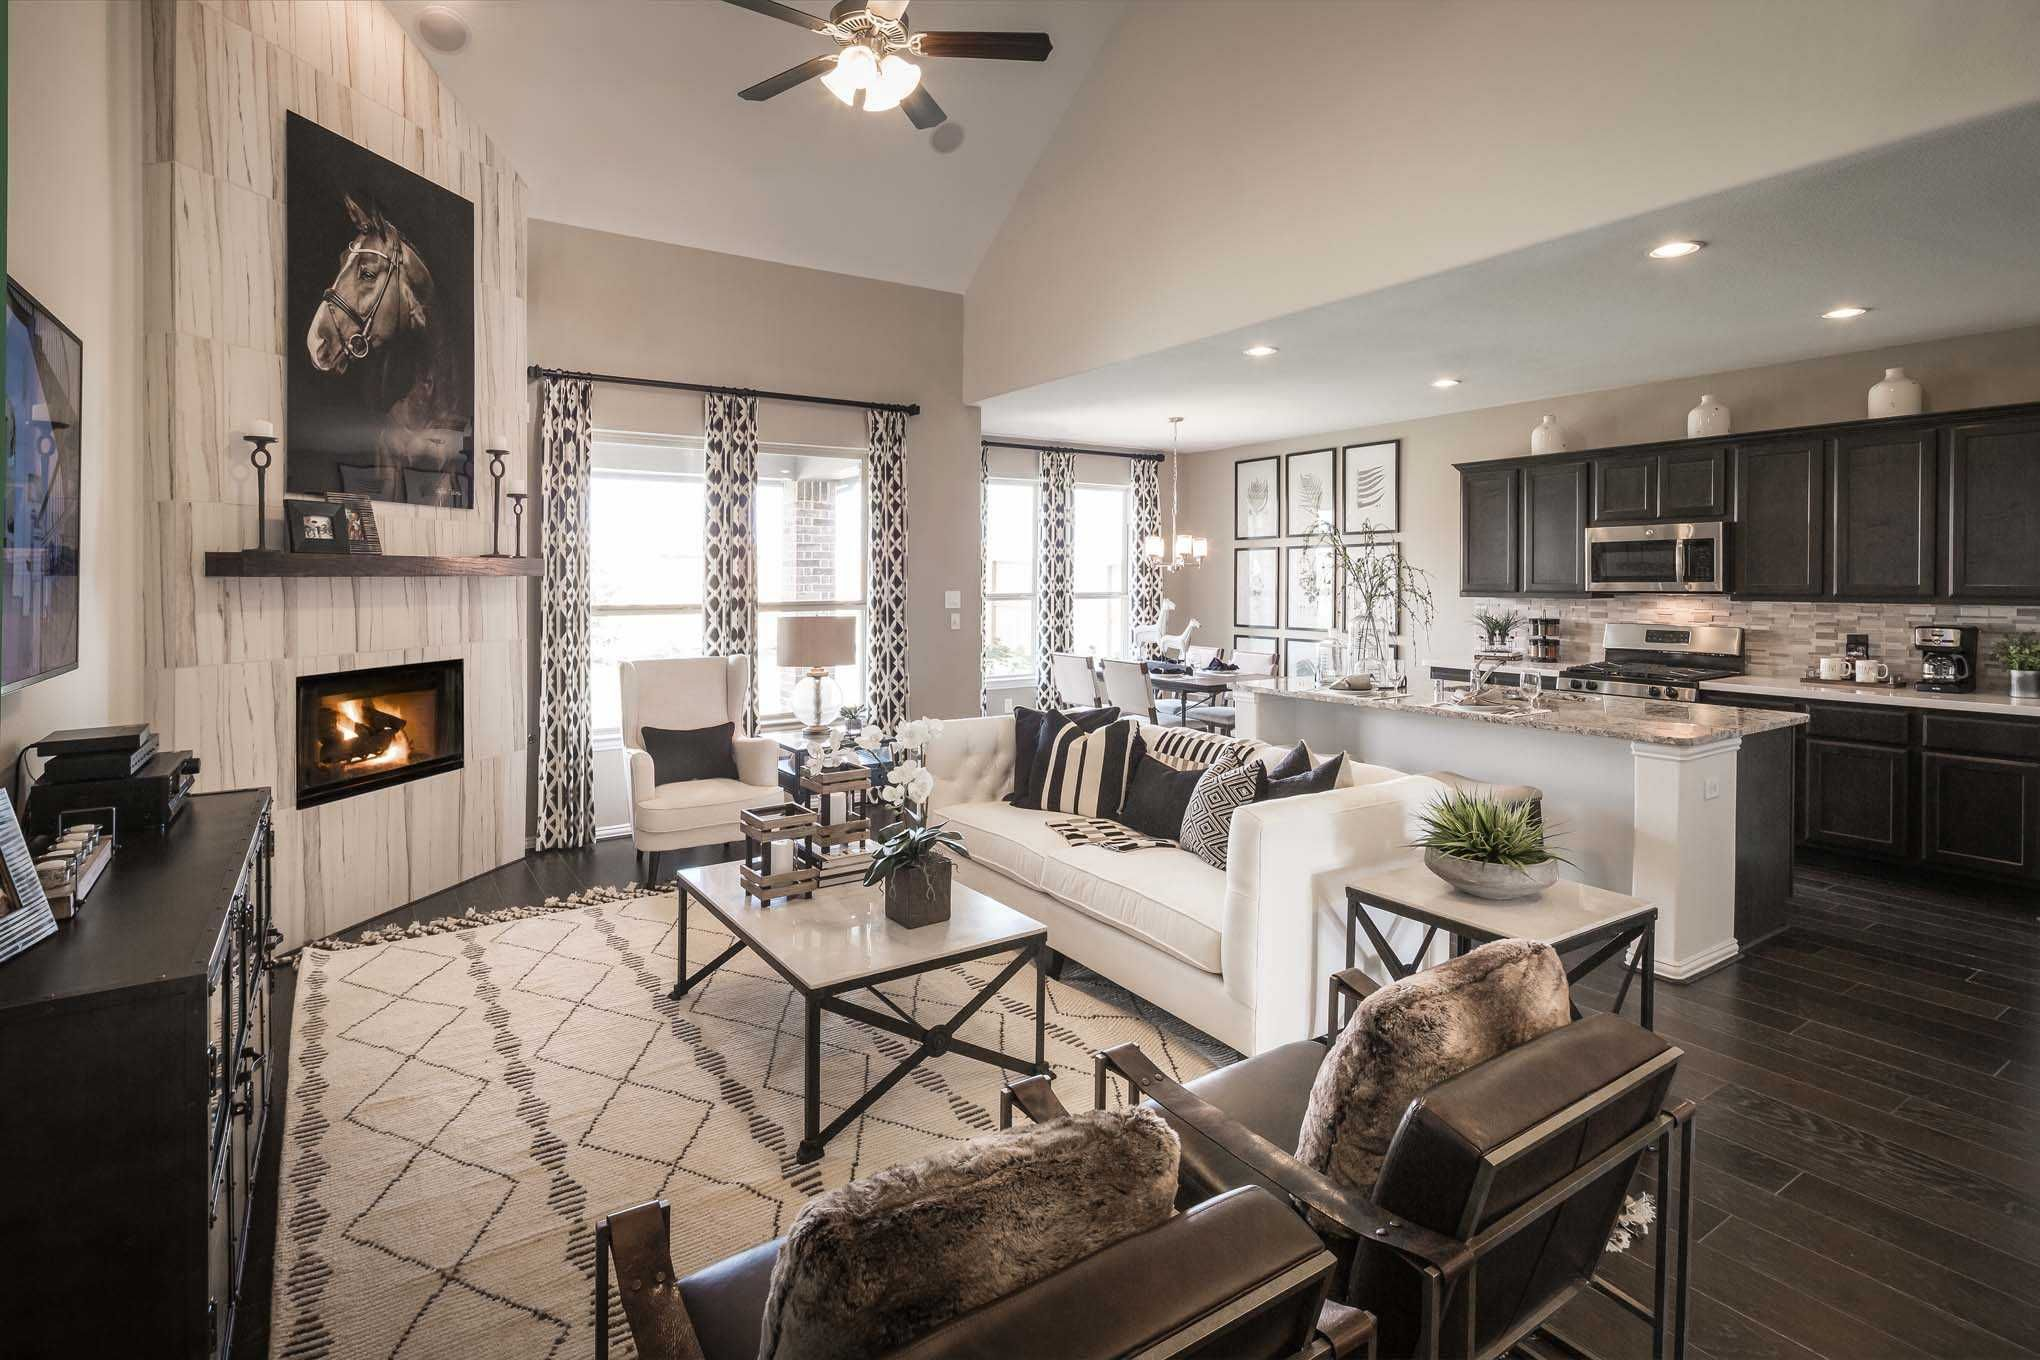 Highland Homes Richmond Model Home in Houston